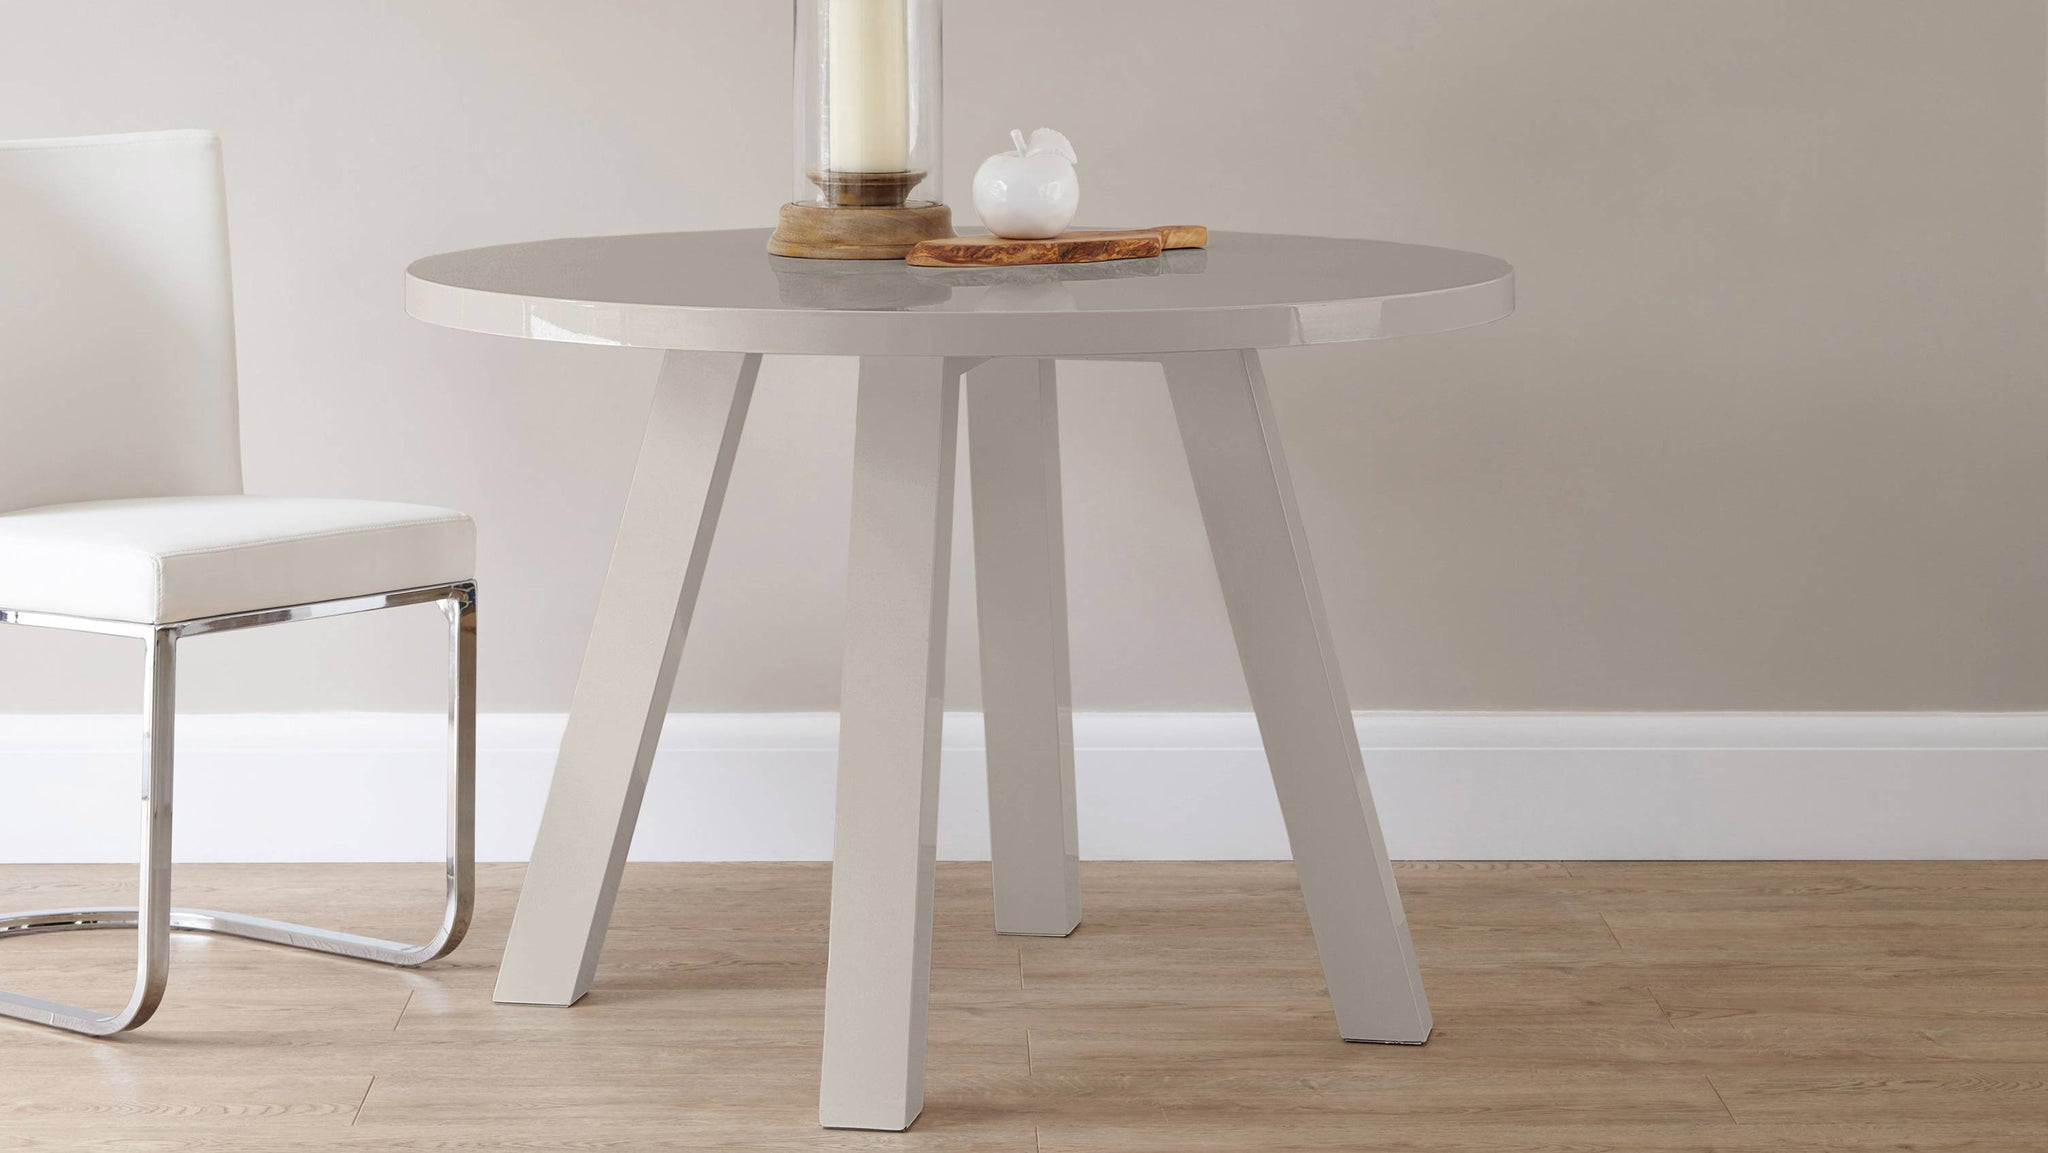 Grey gloss round four seater dining table Exclusively Danetti with Julia Kendell Range